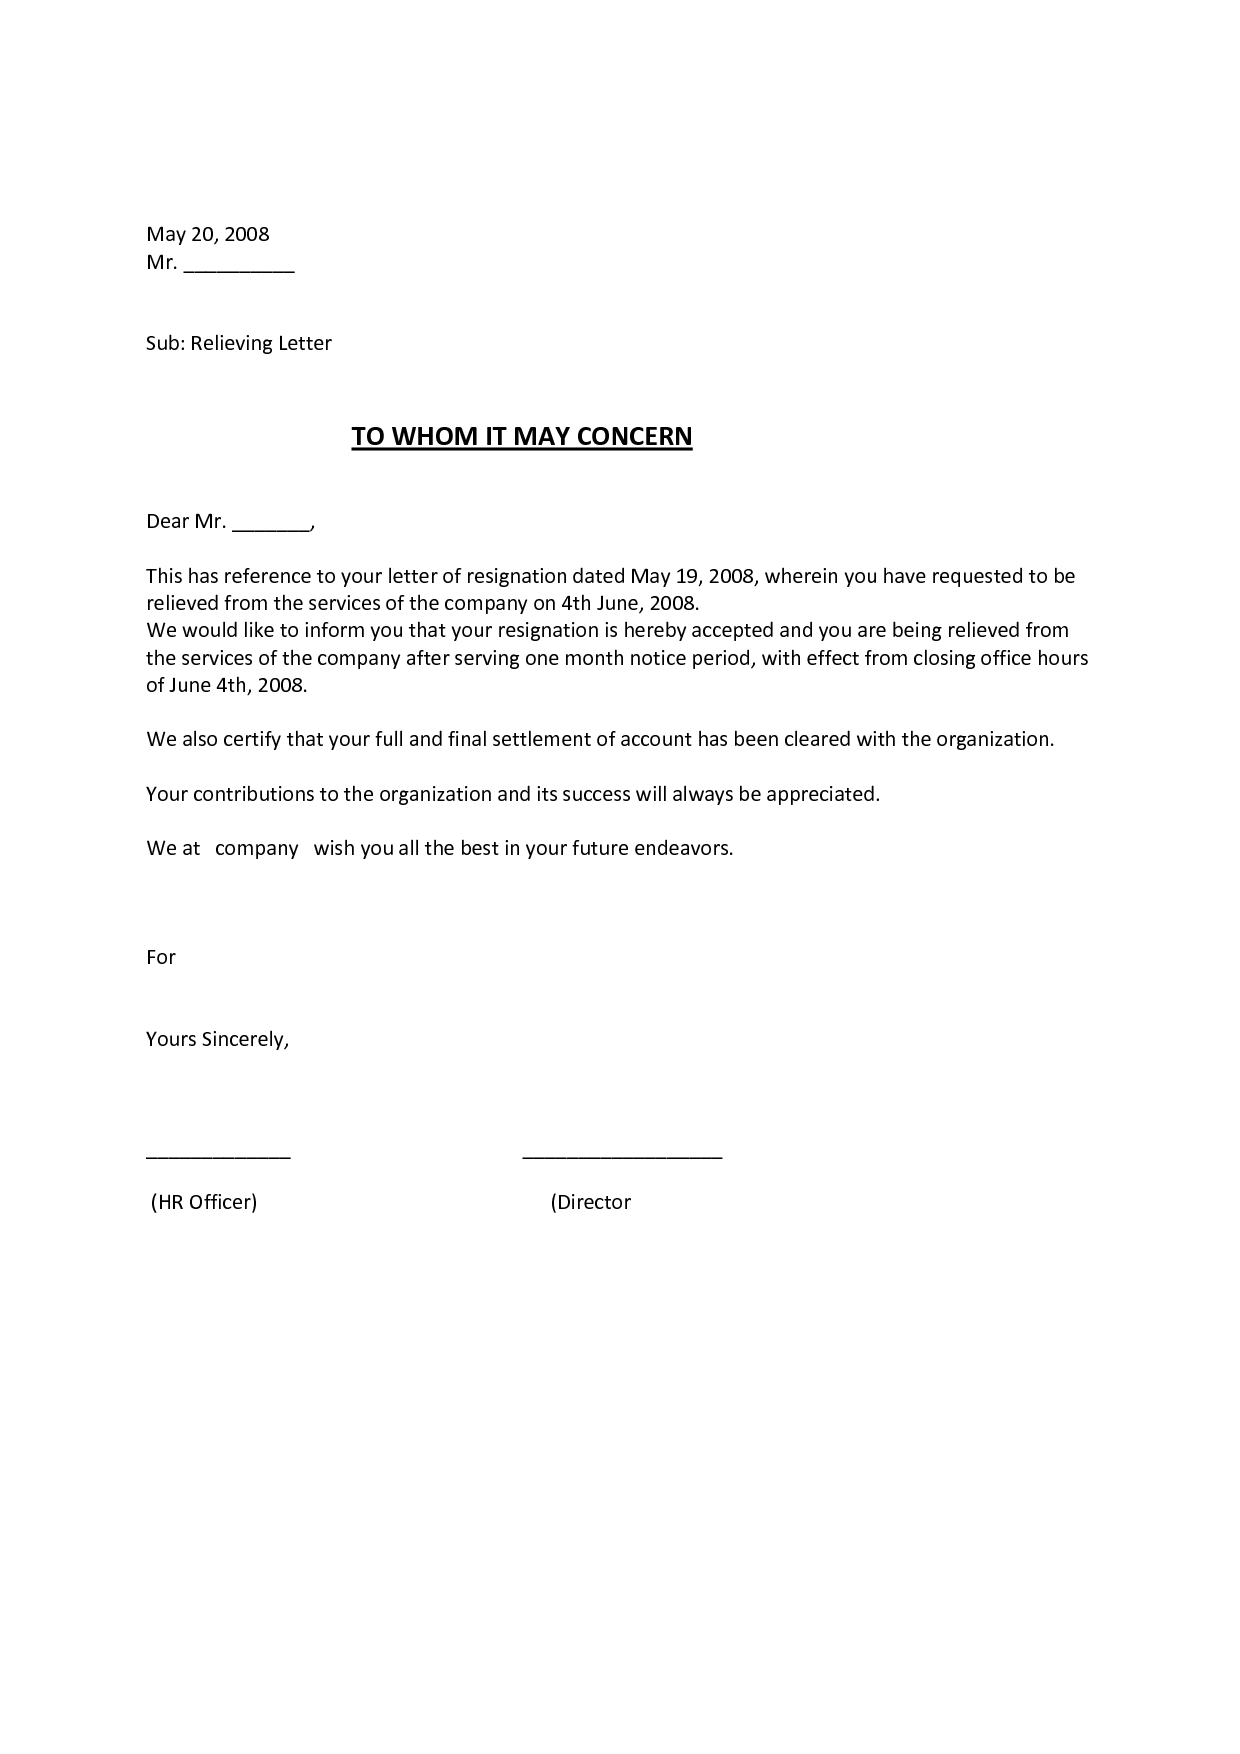 Employee relieving letter a relieving letter is meant to relieve no objection letter format for employer templatebillybullockus resume template doc billybullock stopboris Gallery